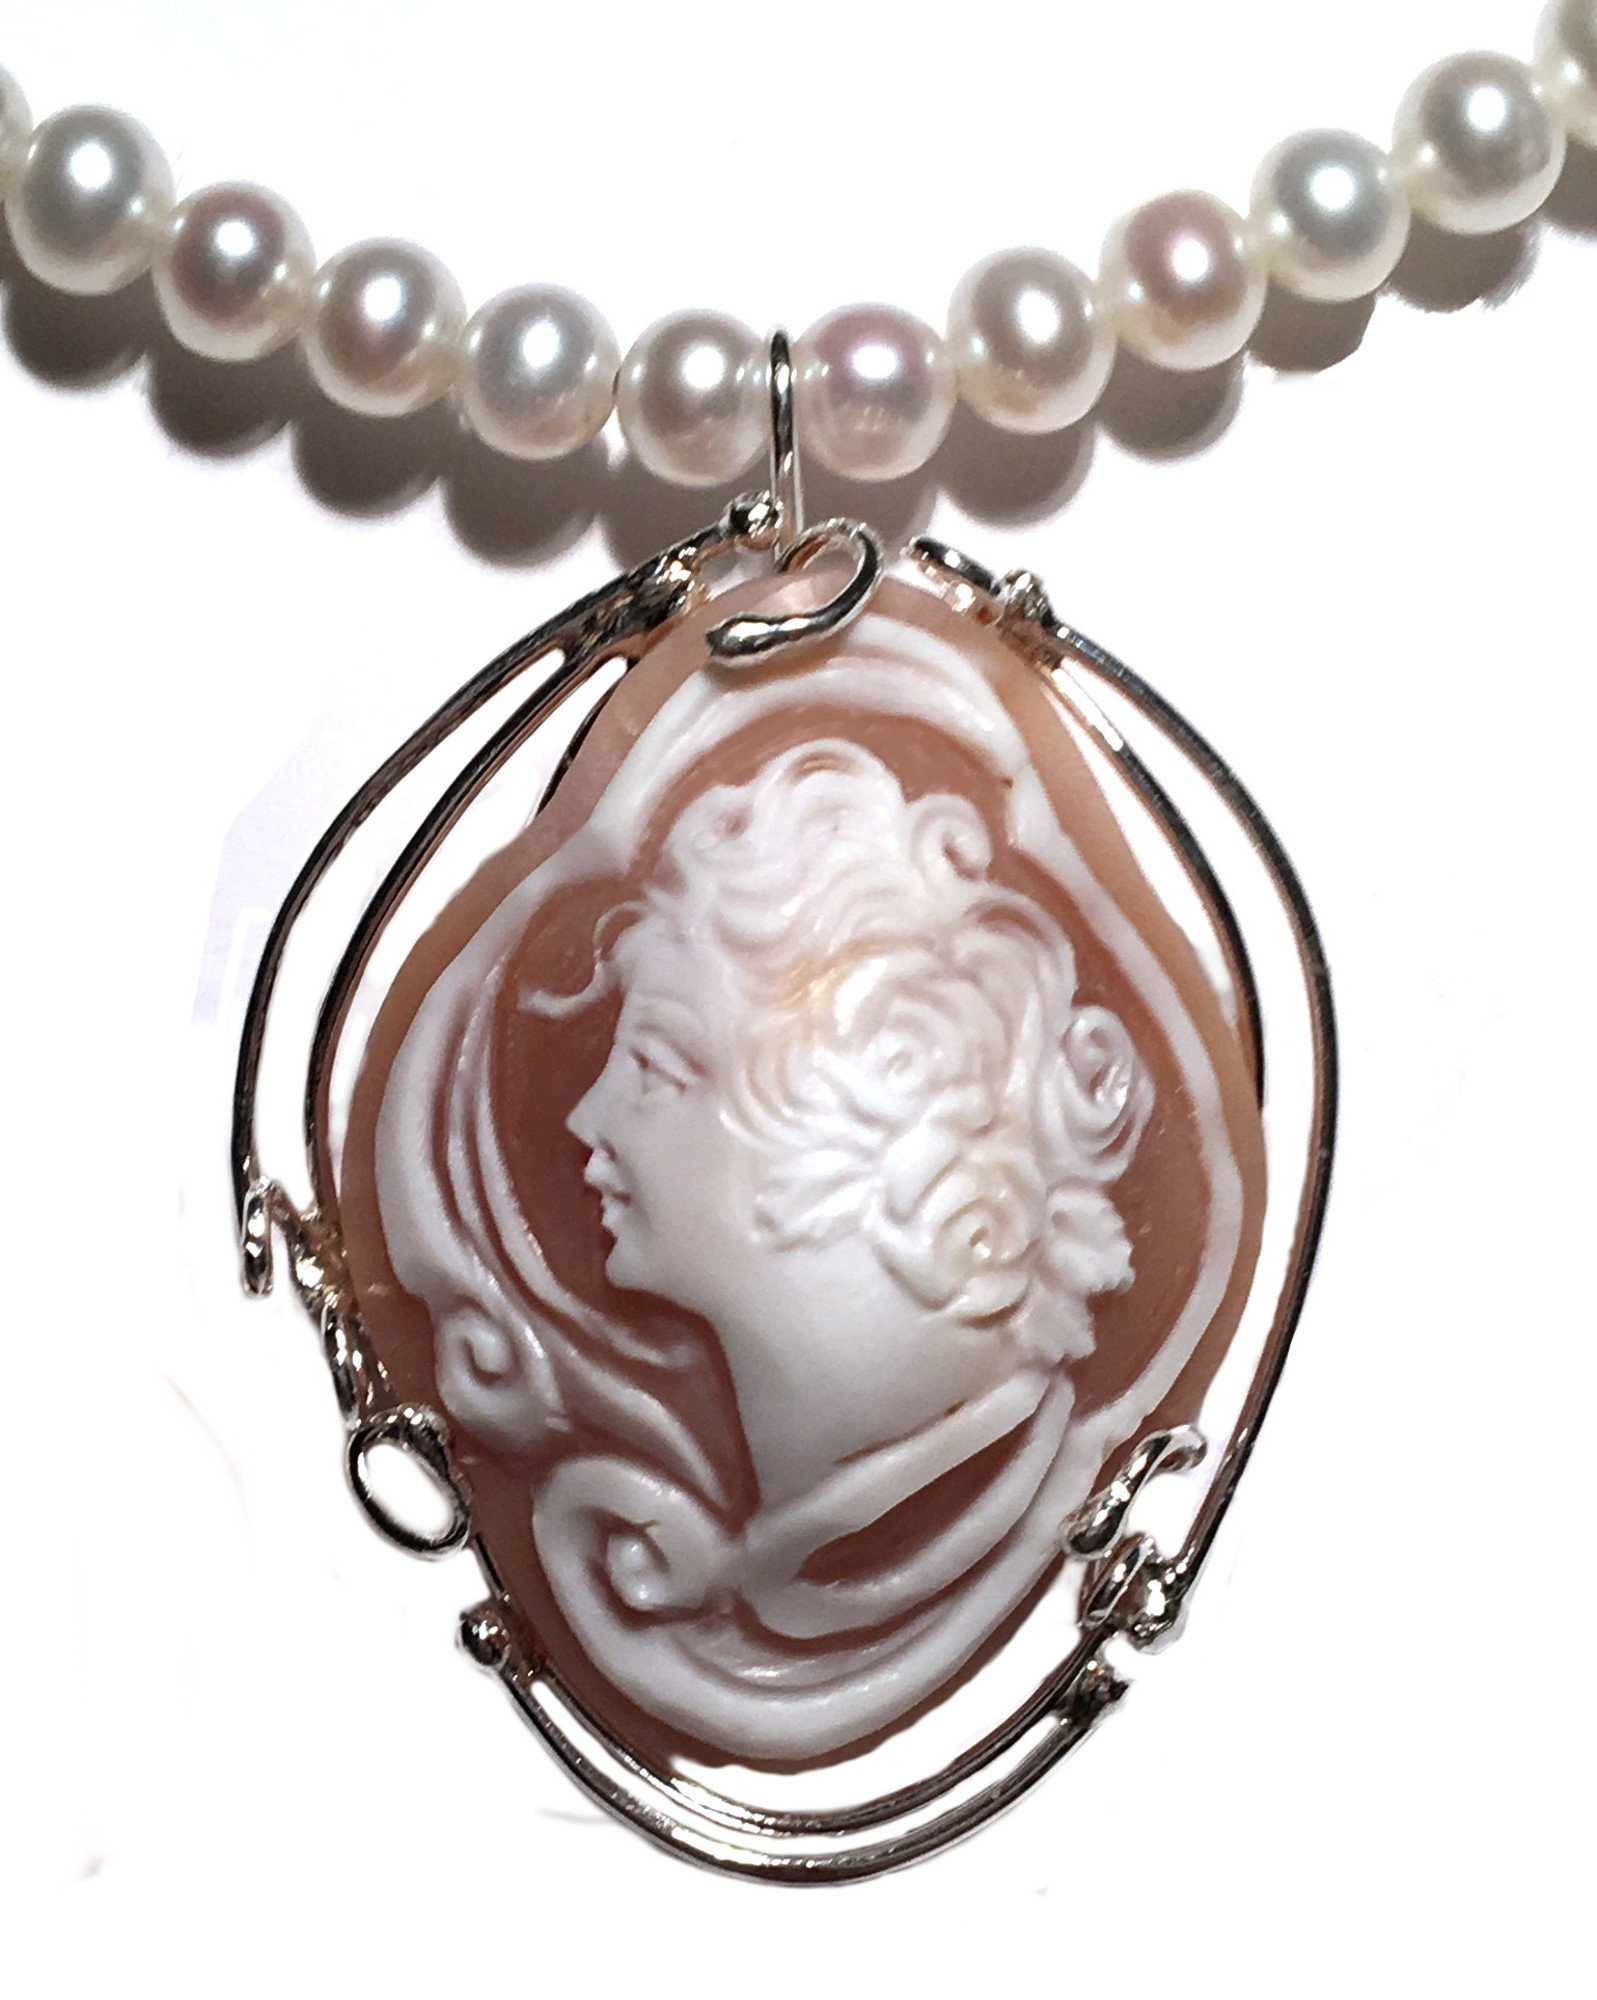 Cameo Brooch Pendant Enhancer Master Carved, Conch Shell Italian Sterling Silver Summer Dream by cameosRus (Image #7)